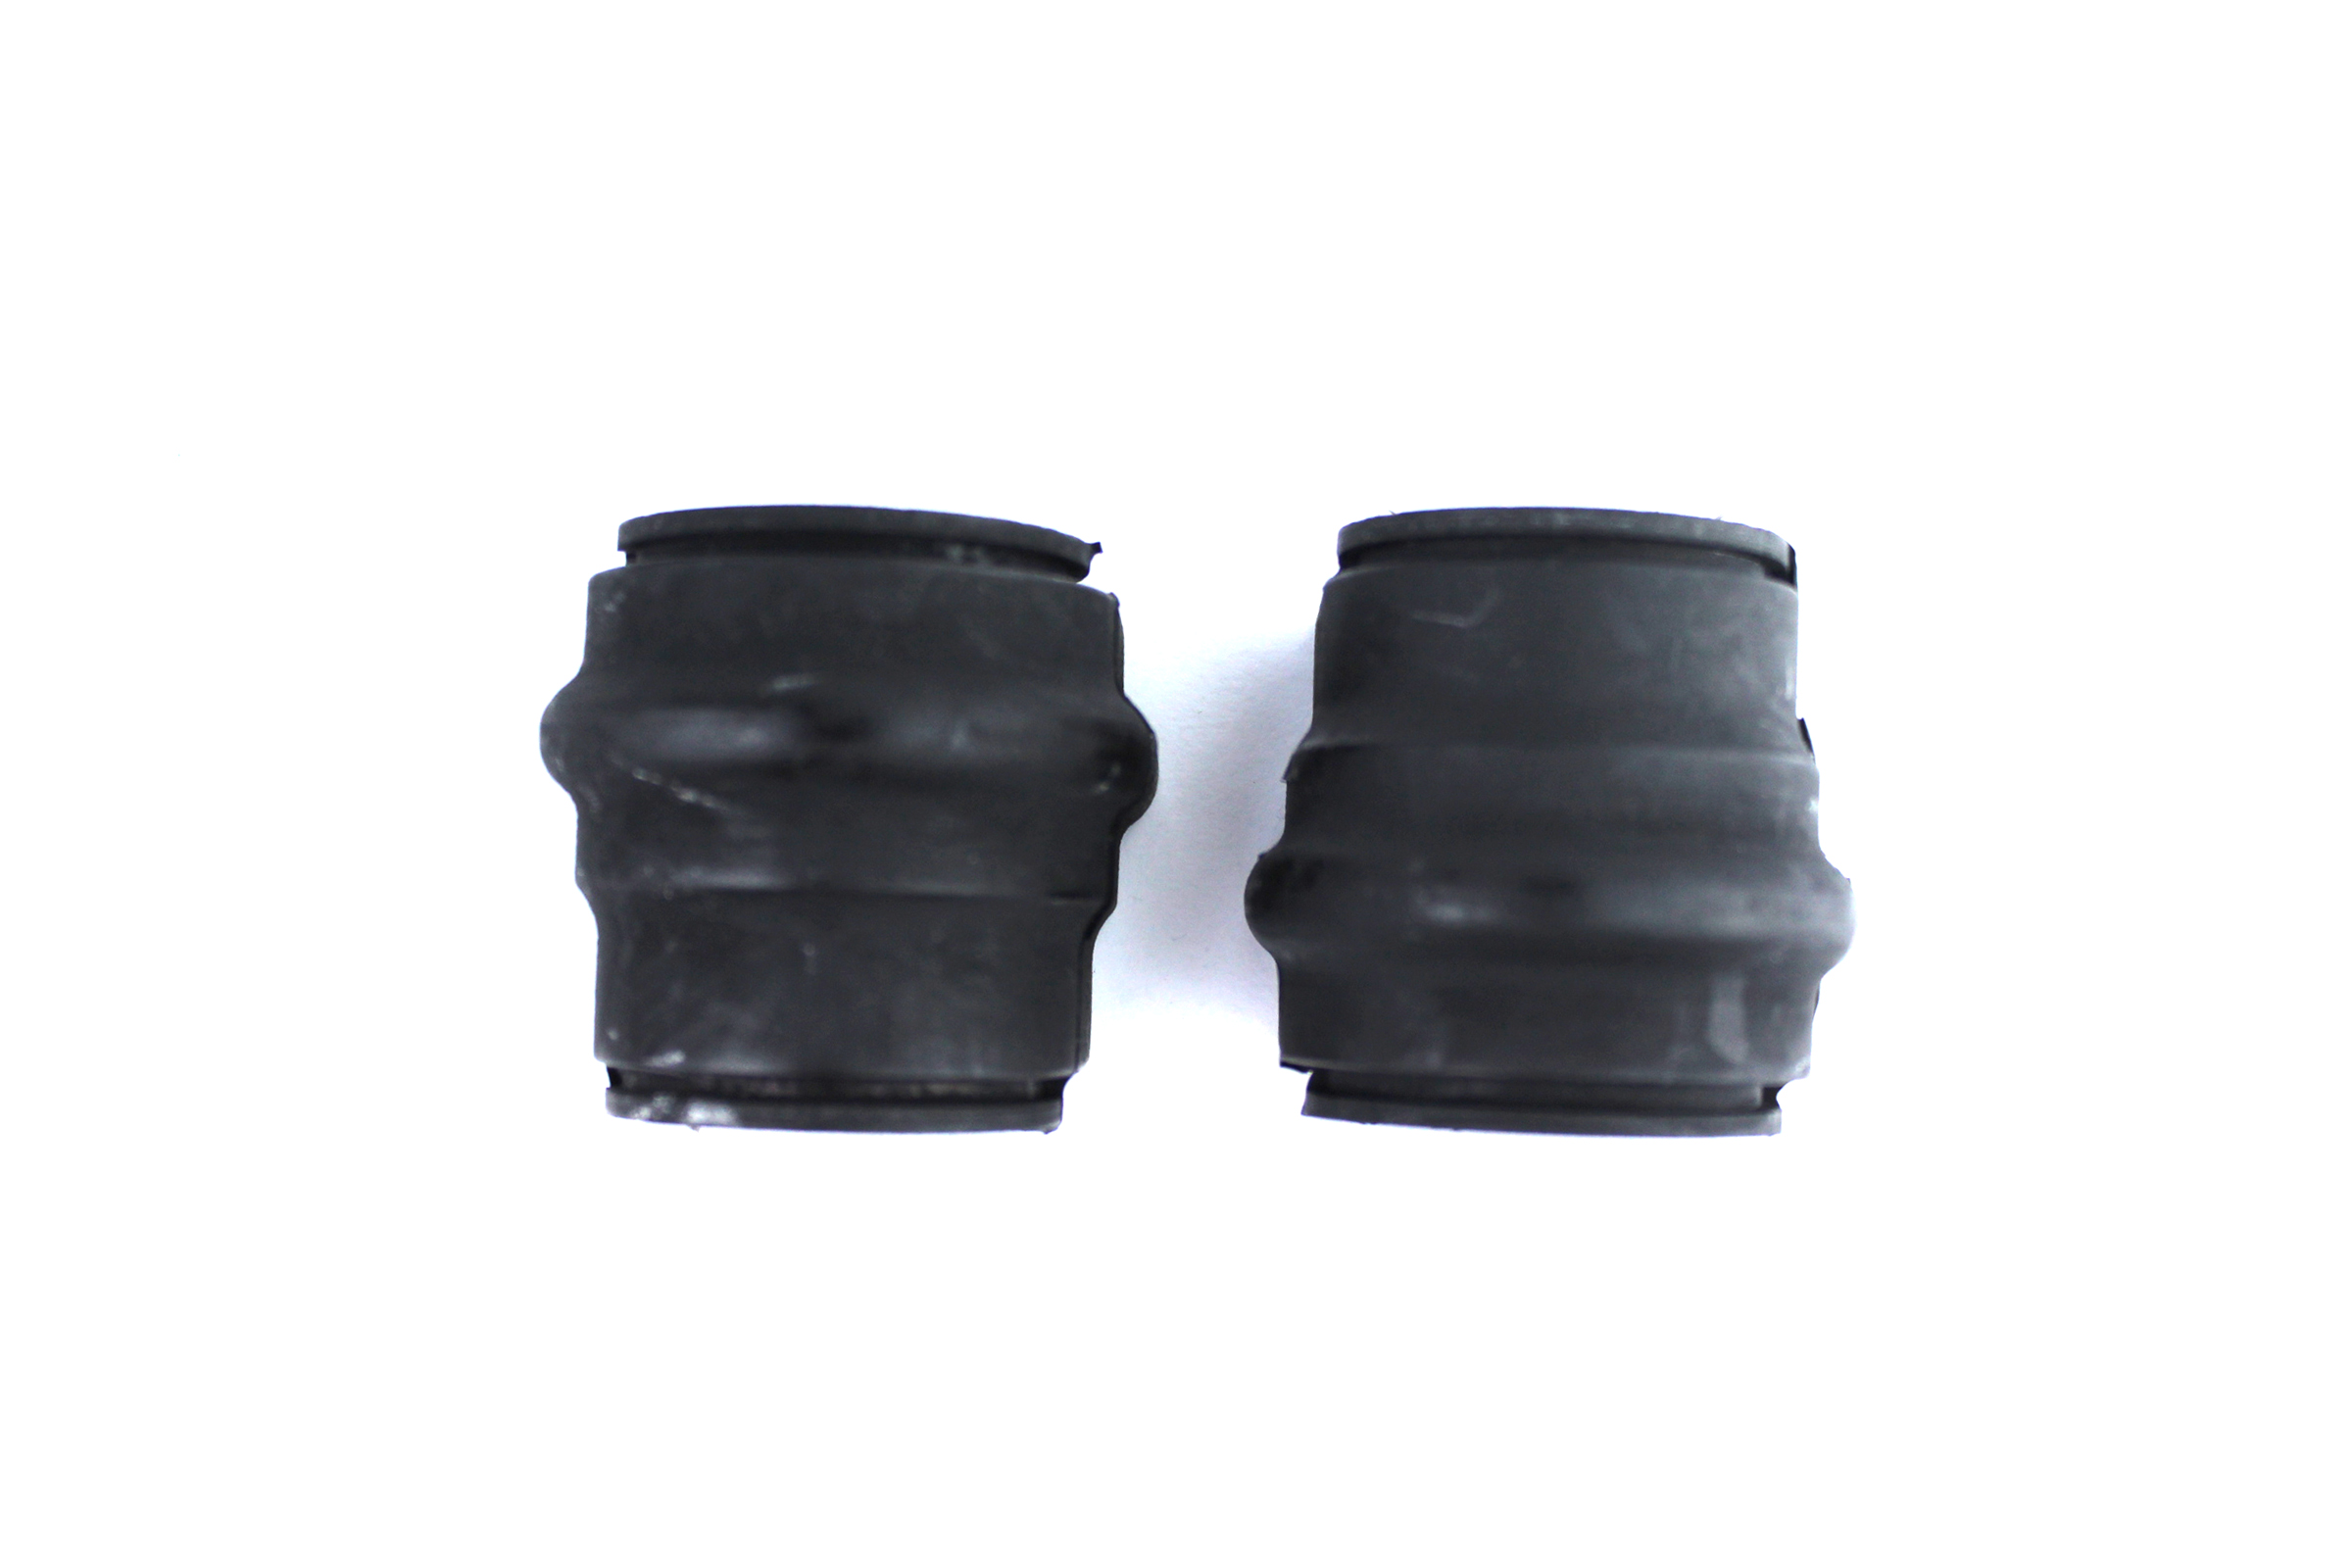 Anti Roll Bar Bush fits MERCEDES CLK55 AMG C209 5.4 Front Left or Right 02 to 09